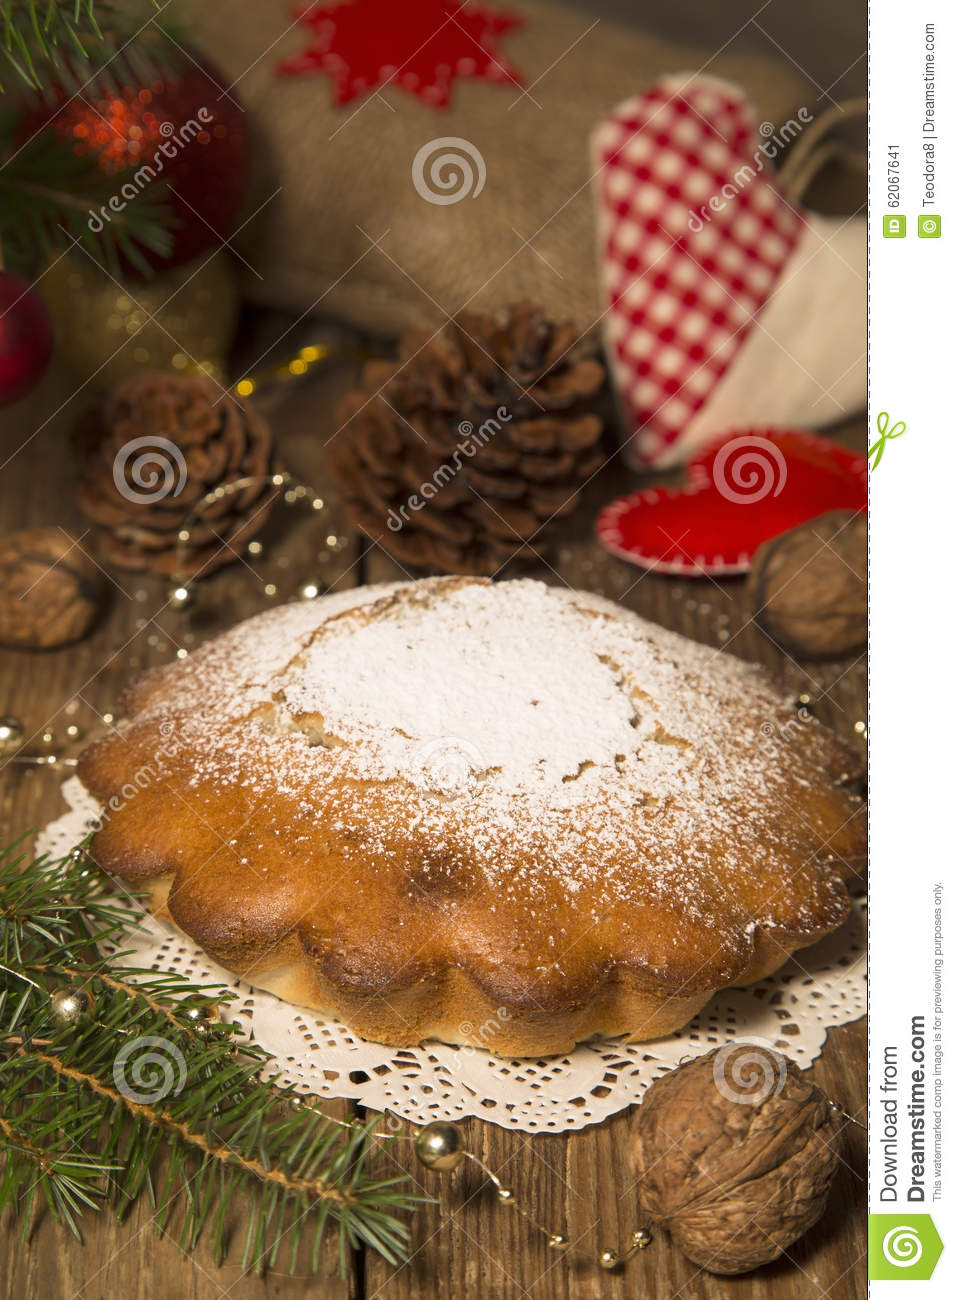 Christmas Cake Decoration Nuts : Christmas Cake Stock Photo - Image: 62067641